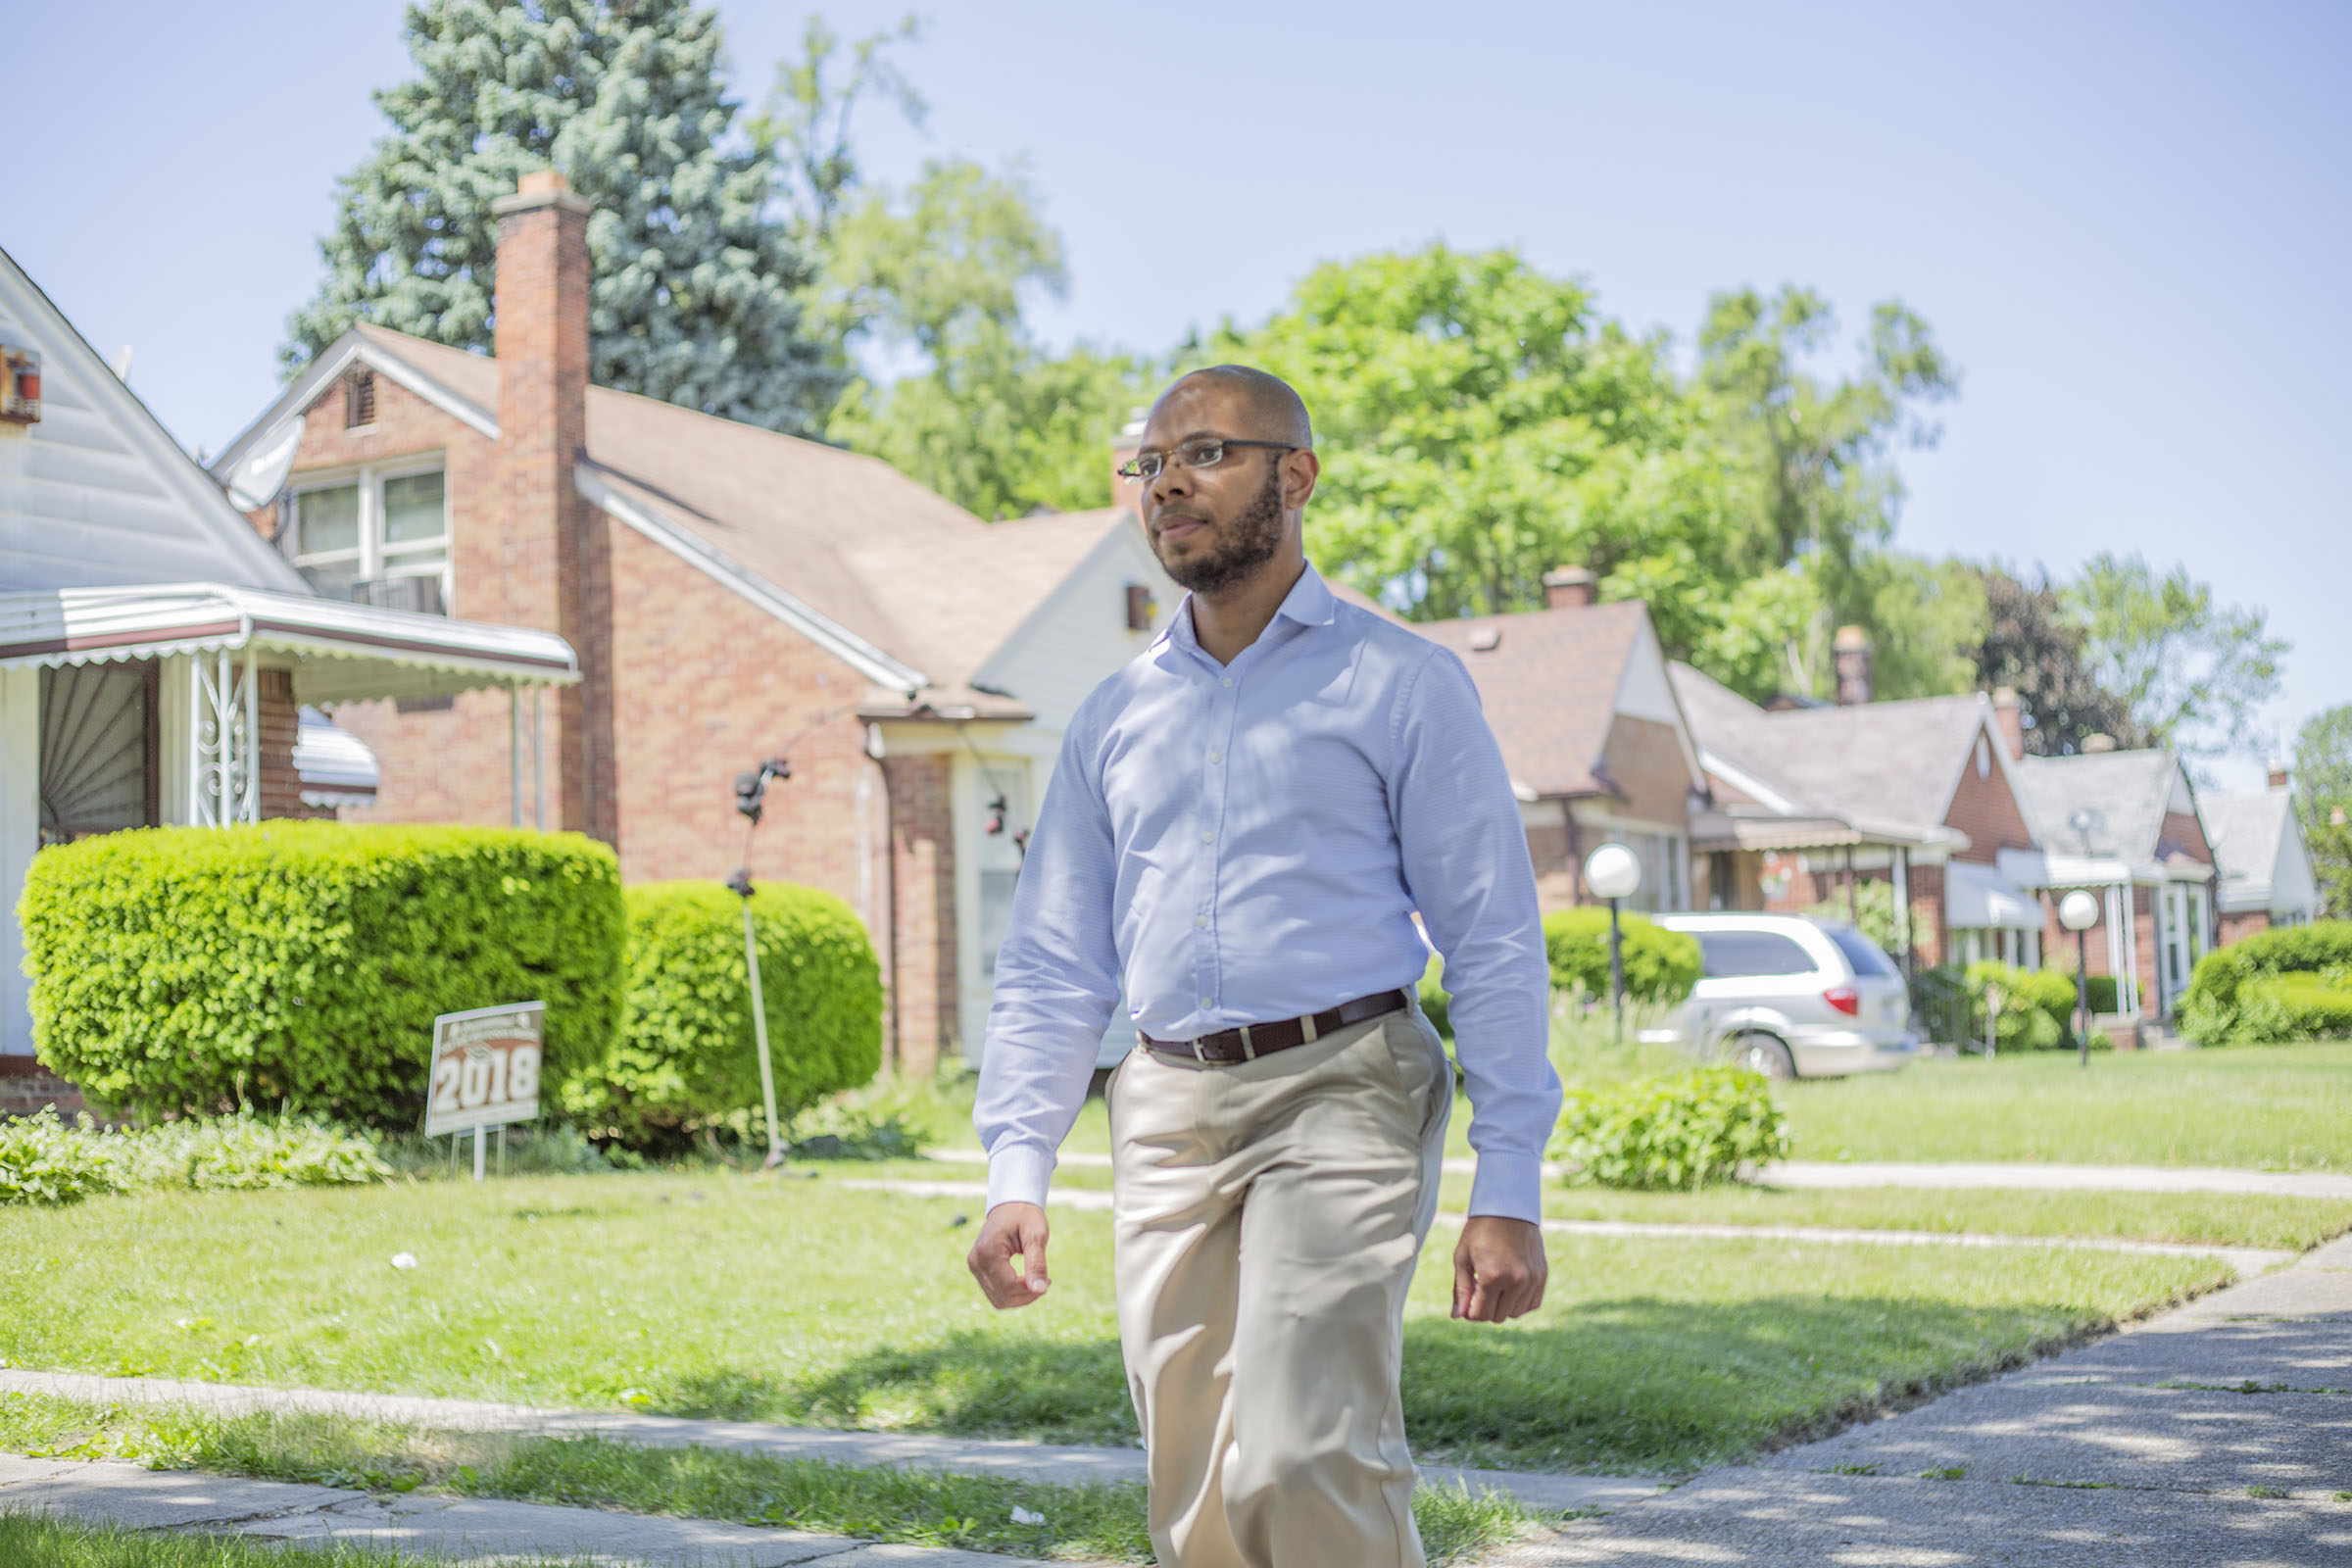 A man walks through a neighborhood